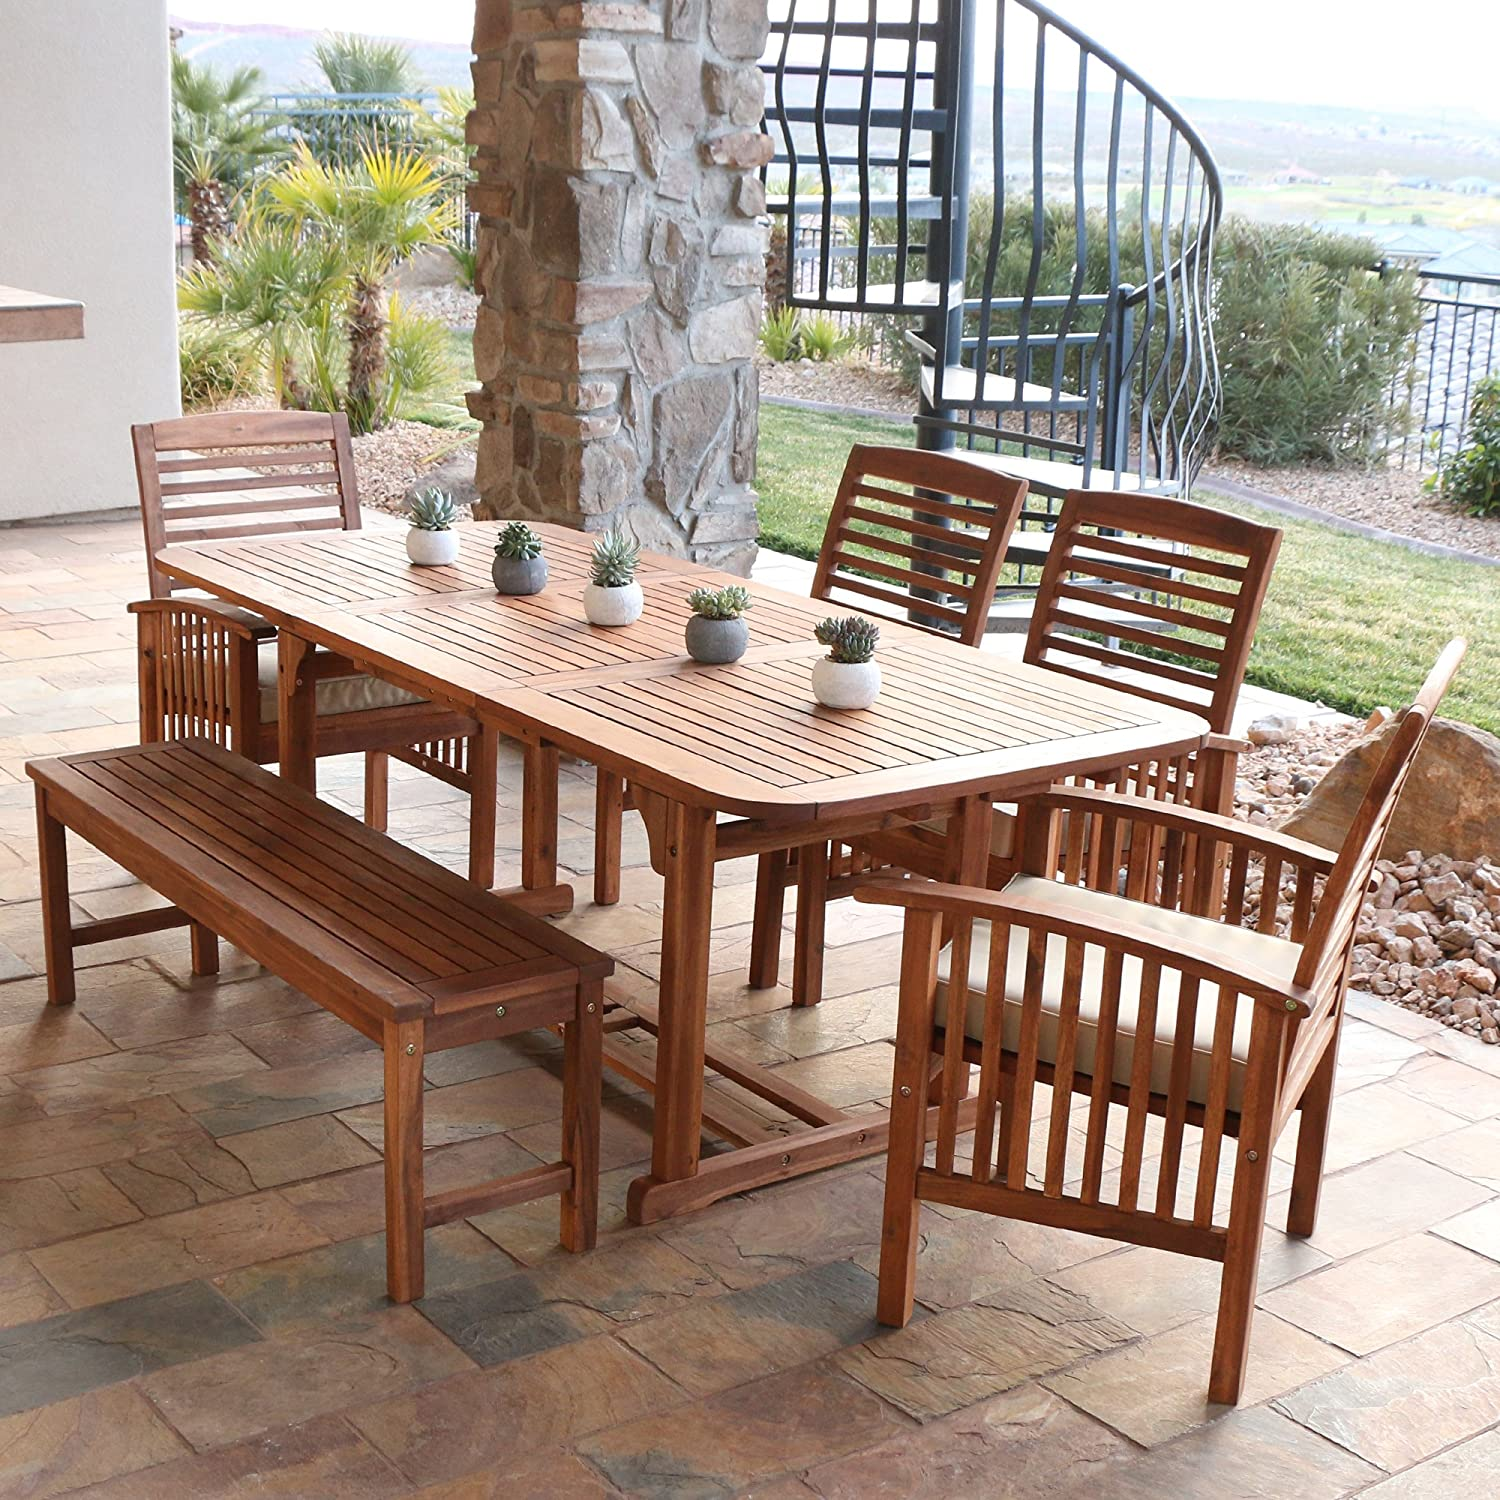 Amazon.com: WE Furniture Solid Acacia Wood 6-Piece Patio Dining ...